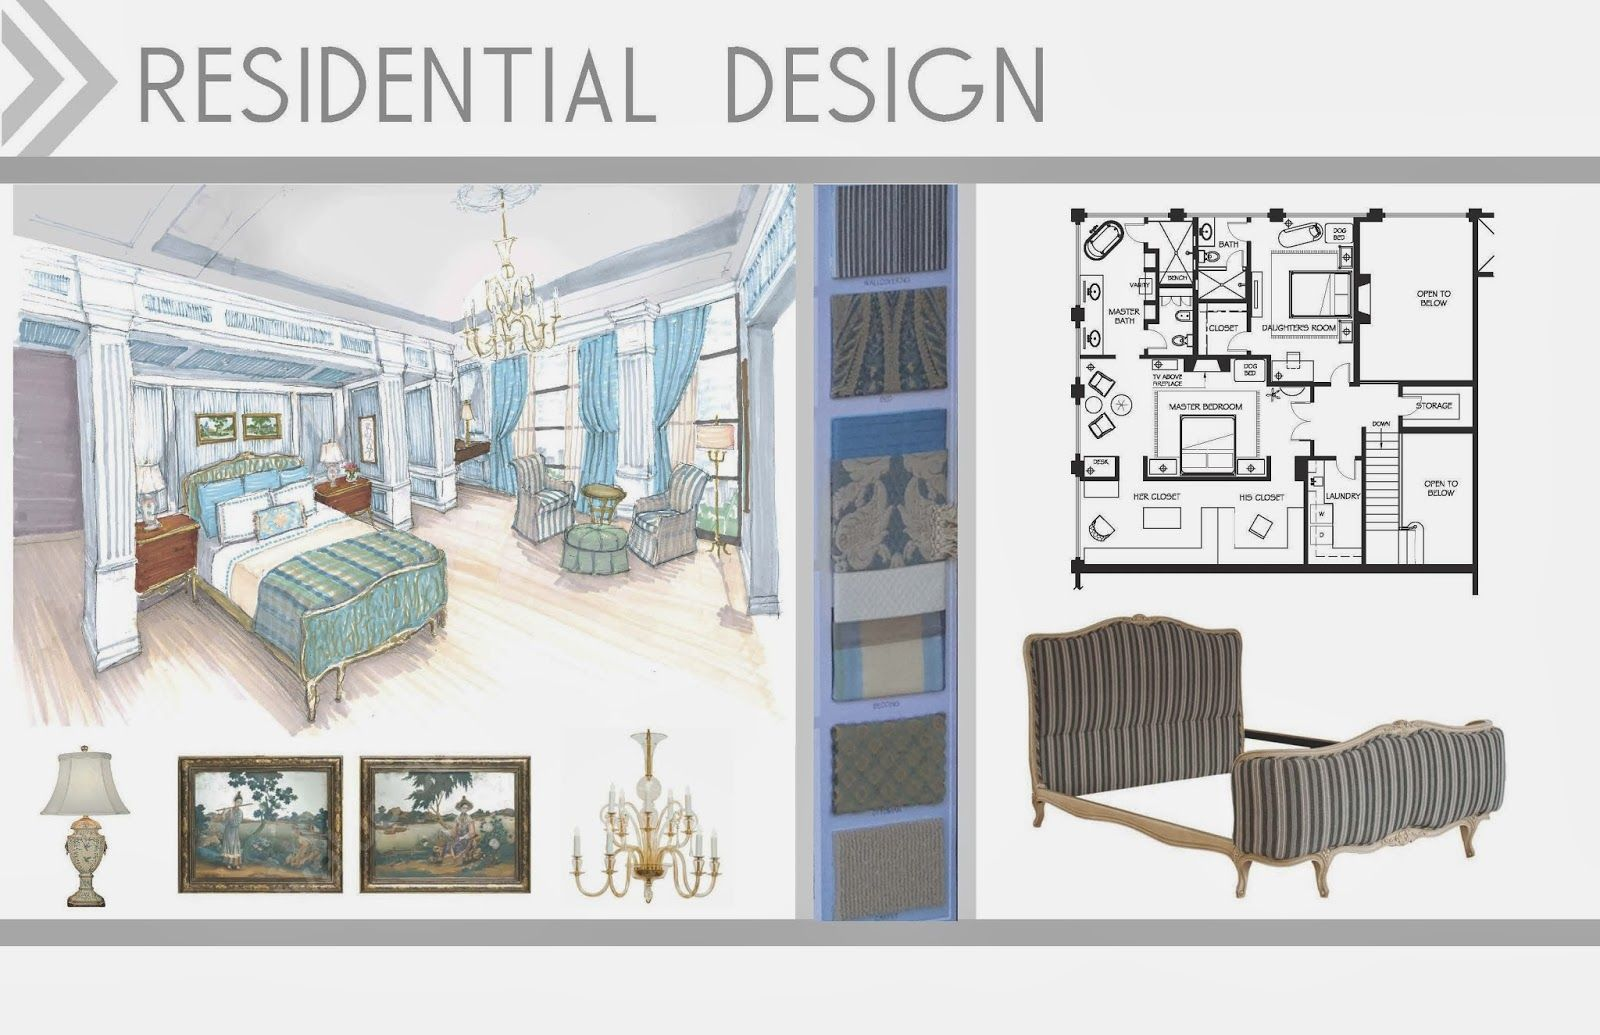 Attractive interior design student portfolio book taking for Interior design portfolio layout ideas